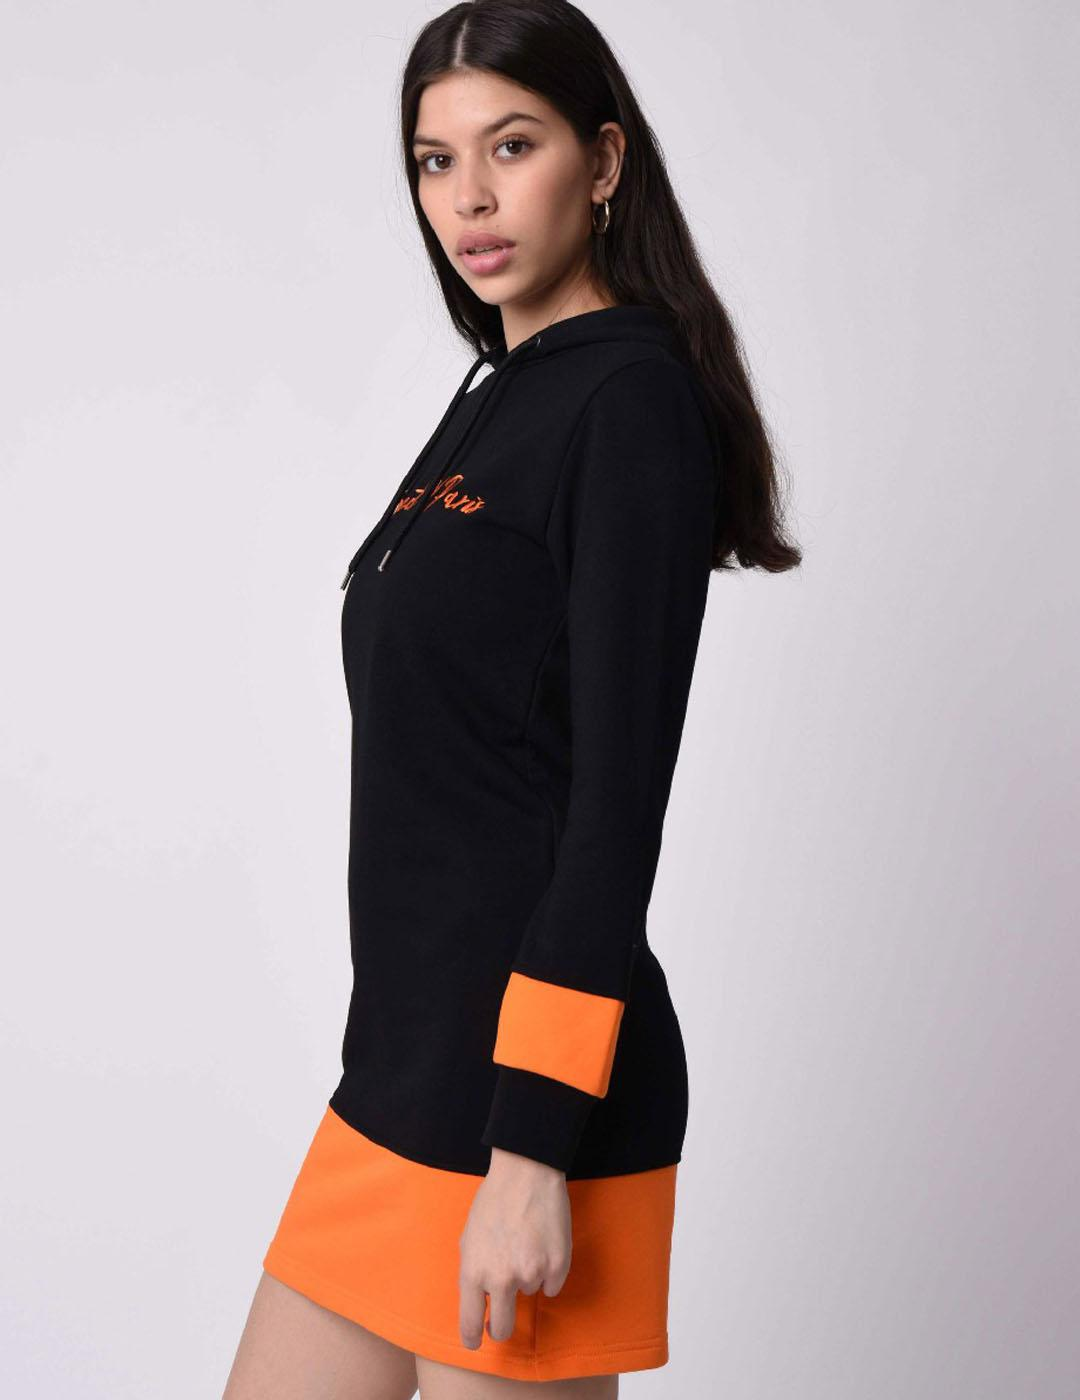 Vestido Proyect X Paris  F197031 - Black Orange